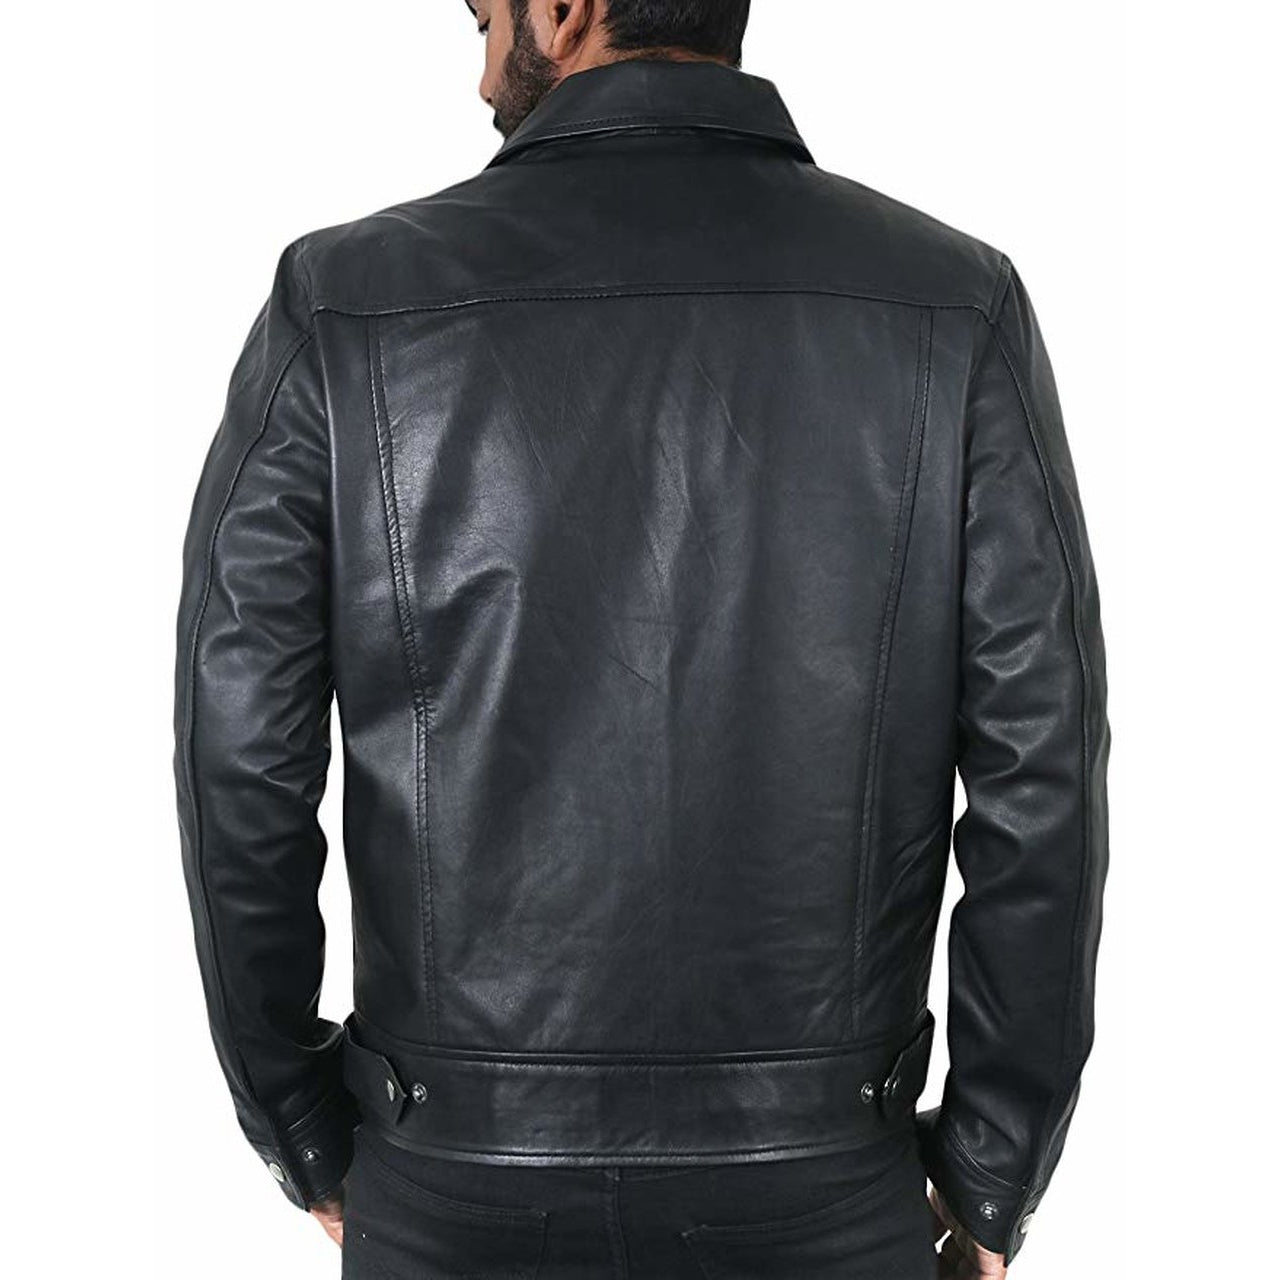 Casual Leather Jacket in Biker Style for Men - Leather Jacket